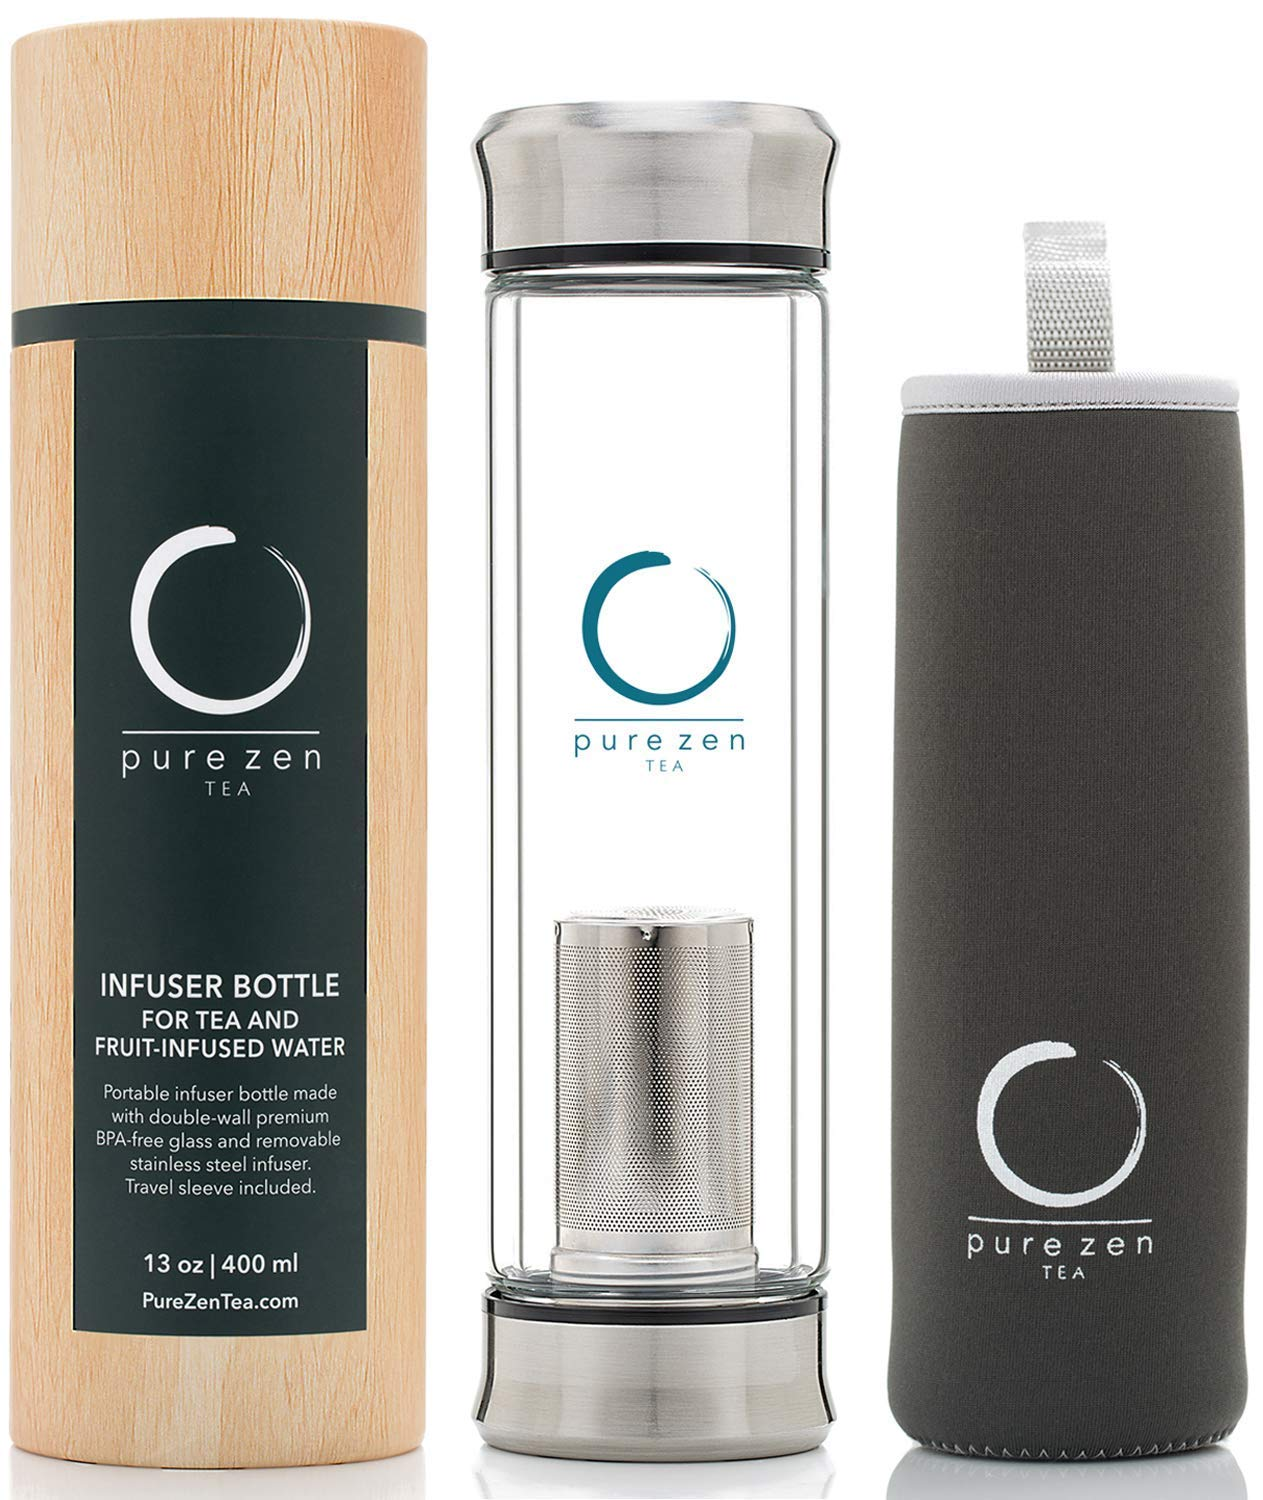 Pure Zen Tea Tumbler with Infuser - BPA Free Double Wall Glass Travel Tea Mug with Stainless Steel Filter - Leakproof Tea Bottle with Strainer for Loose Leaf Tea and Fruit Water 13 Ounce by Pure Zen Tea